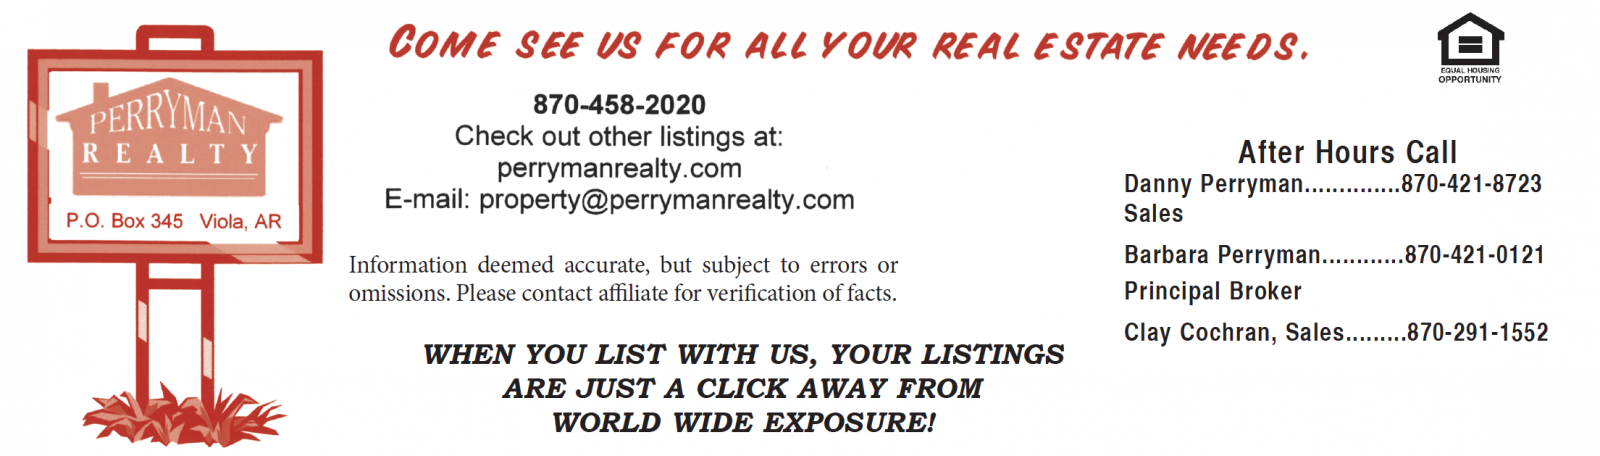 Perryman Realty � Viola, AR Real Estate